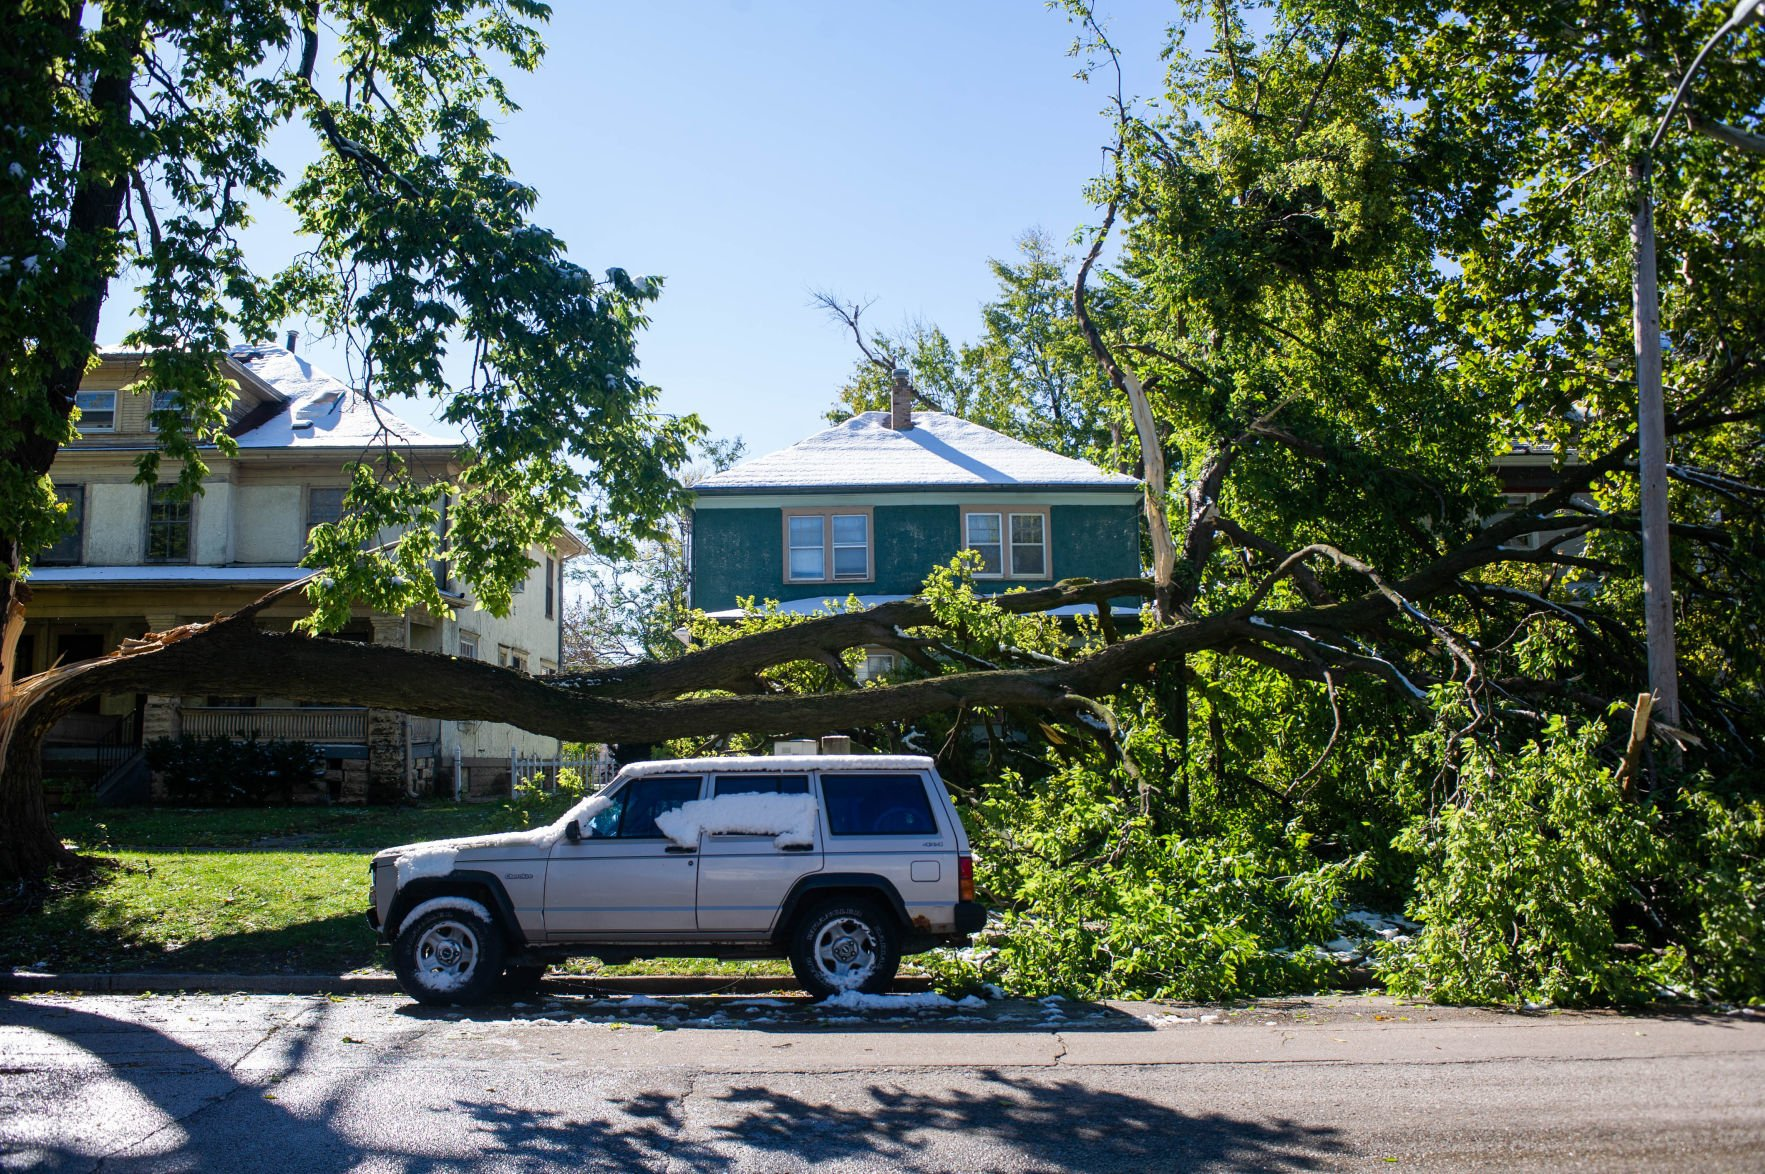 Wet snow damages trees, severs power and sends woman to hospital   Journal Star